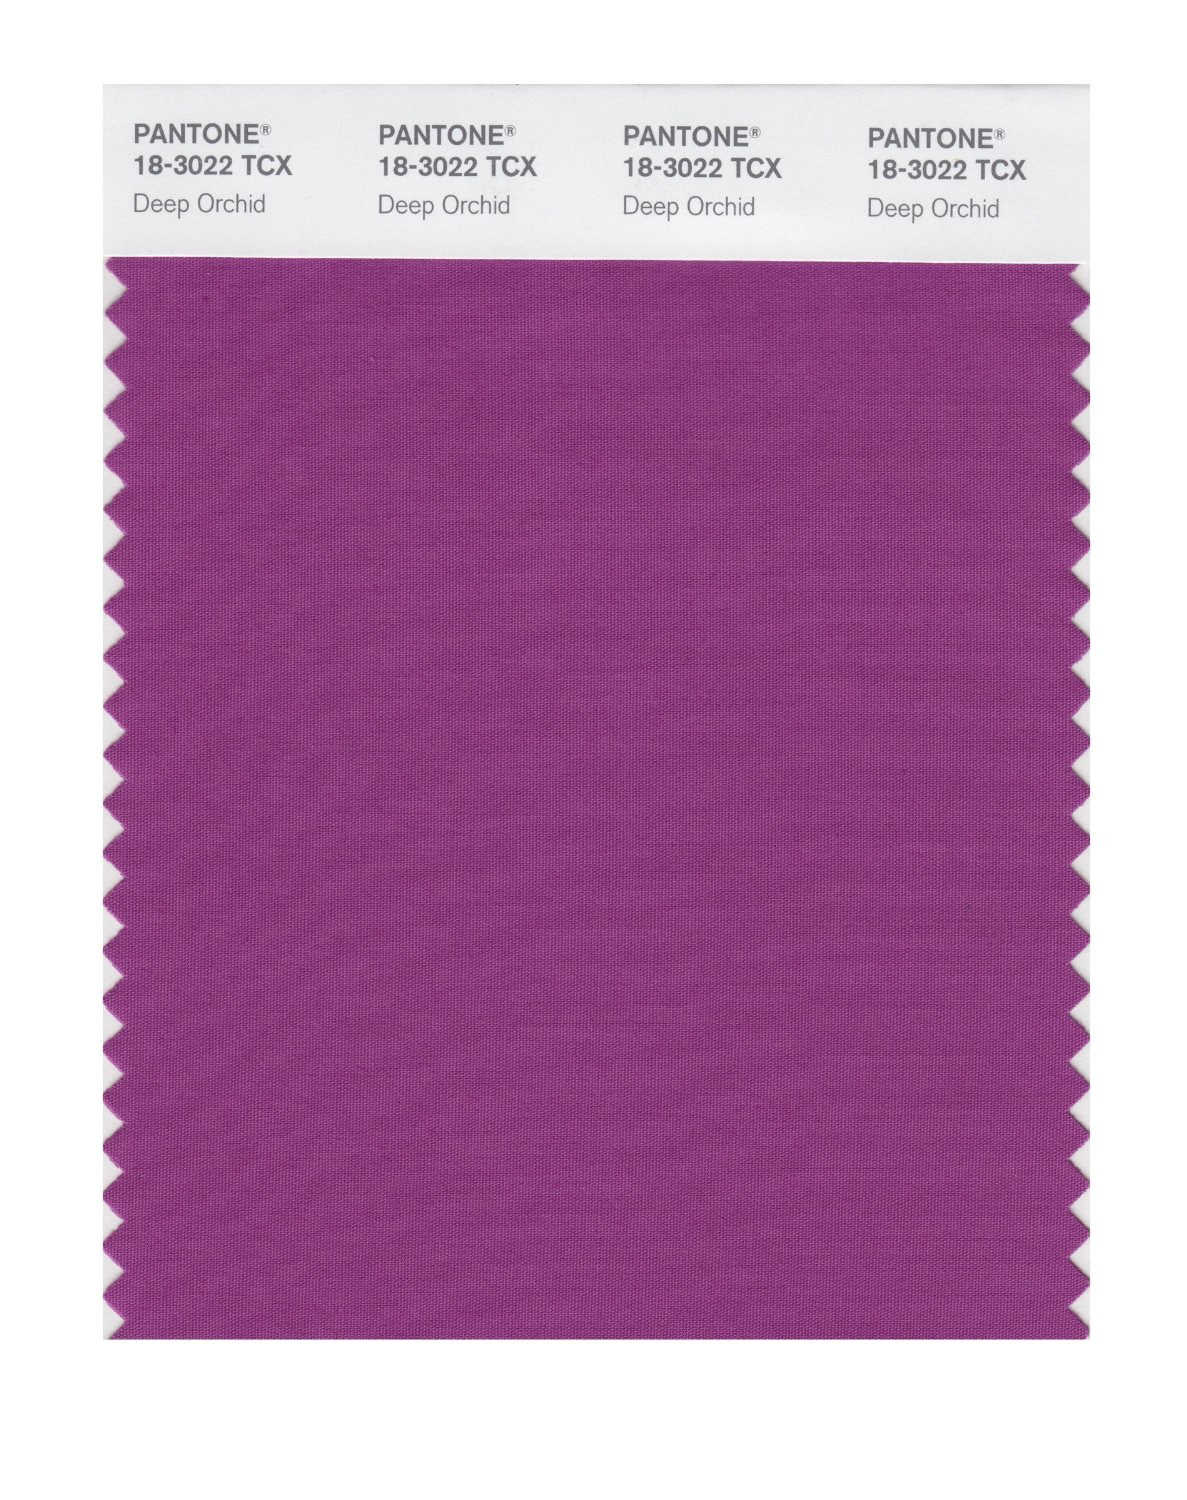 Pantone Smart Swatch 18-3022 Deep Orchid